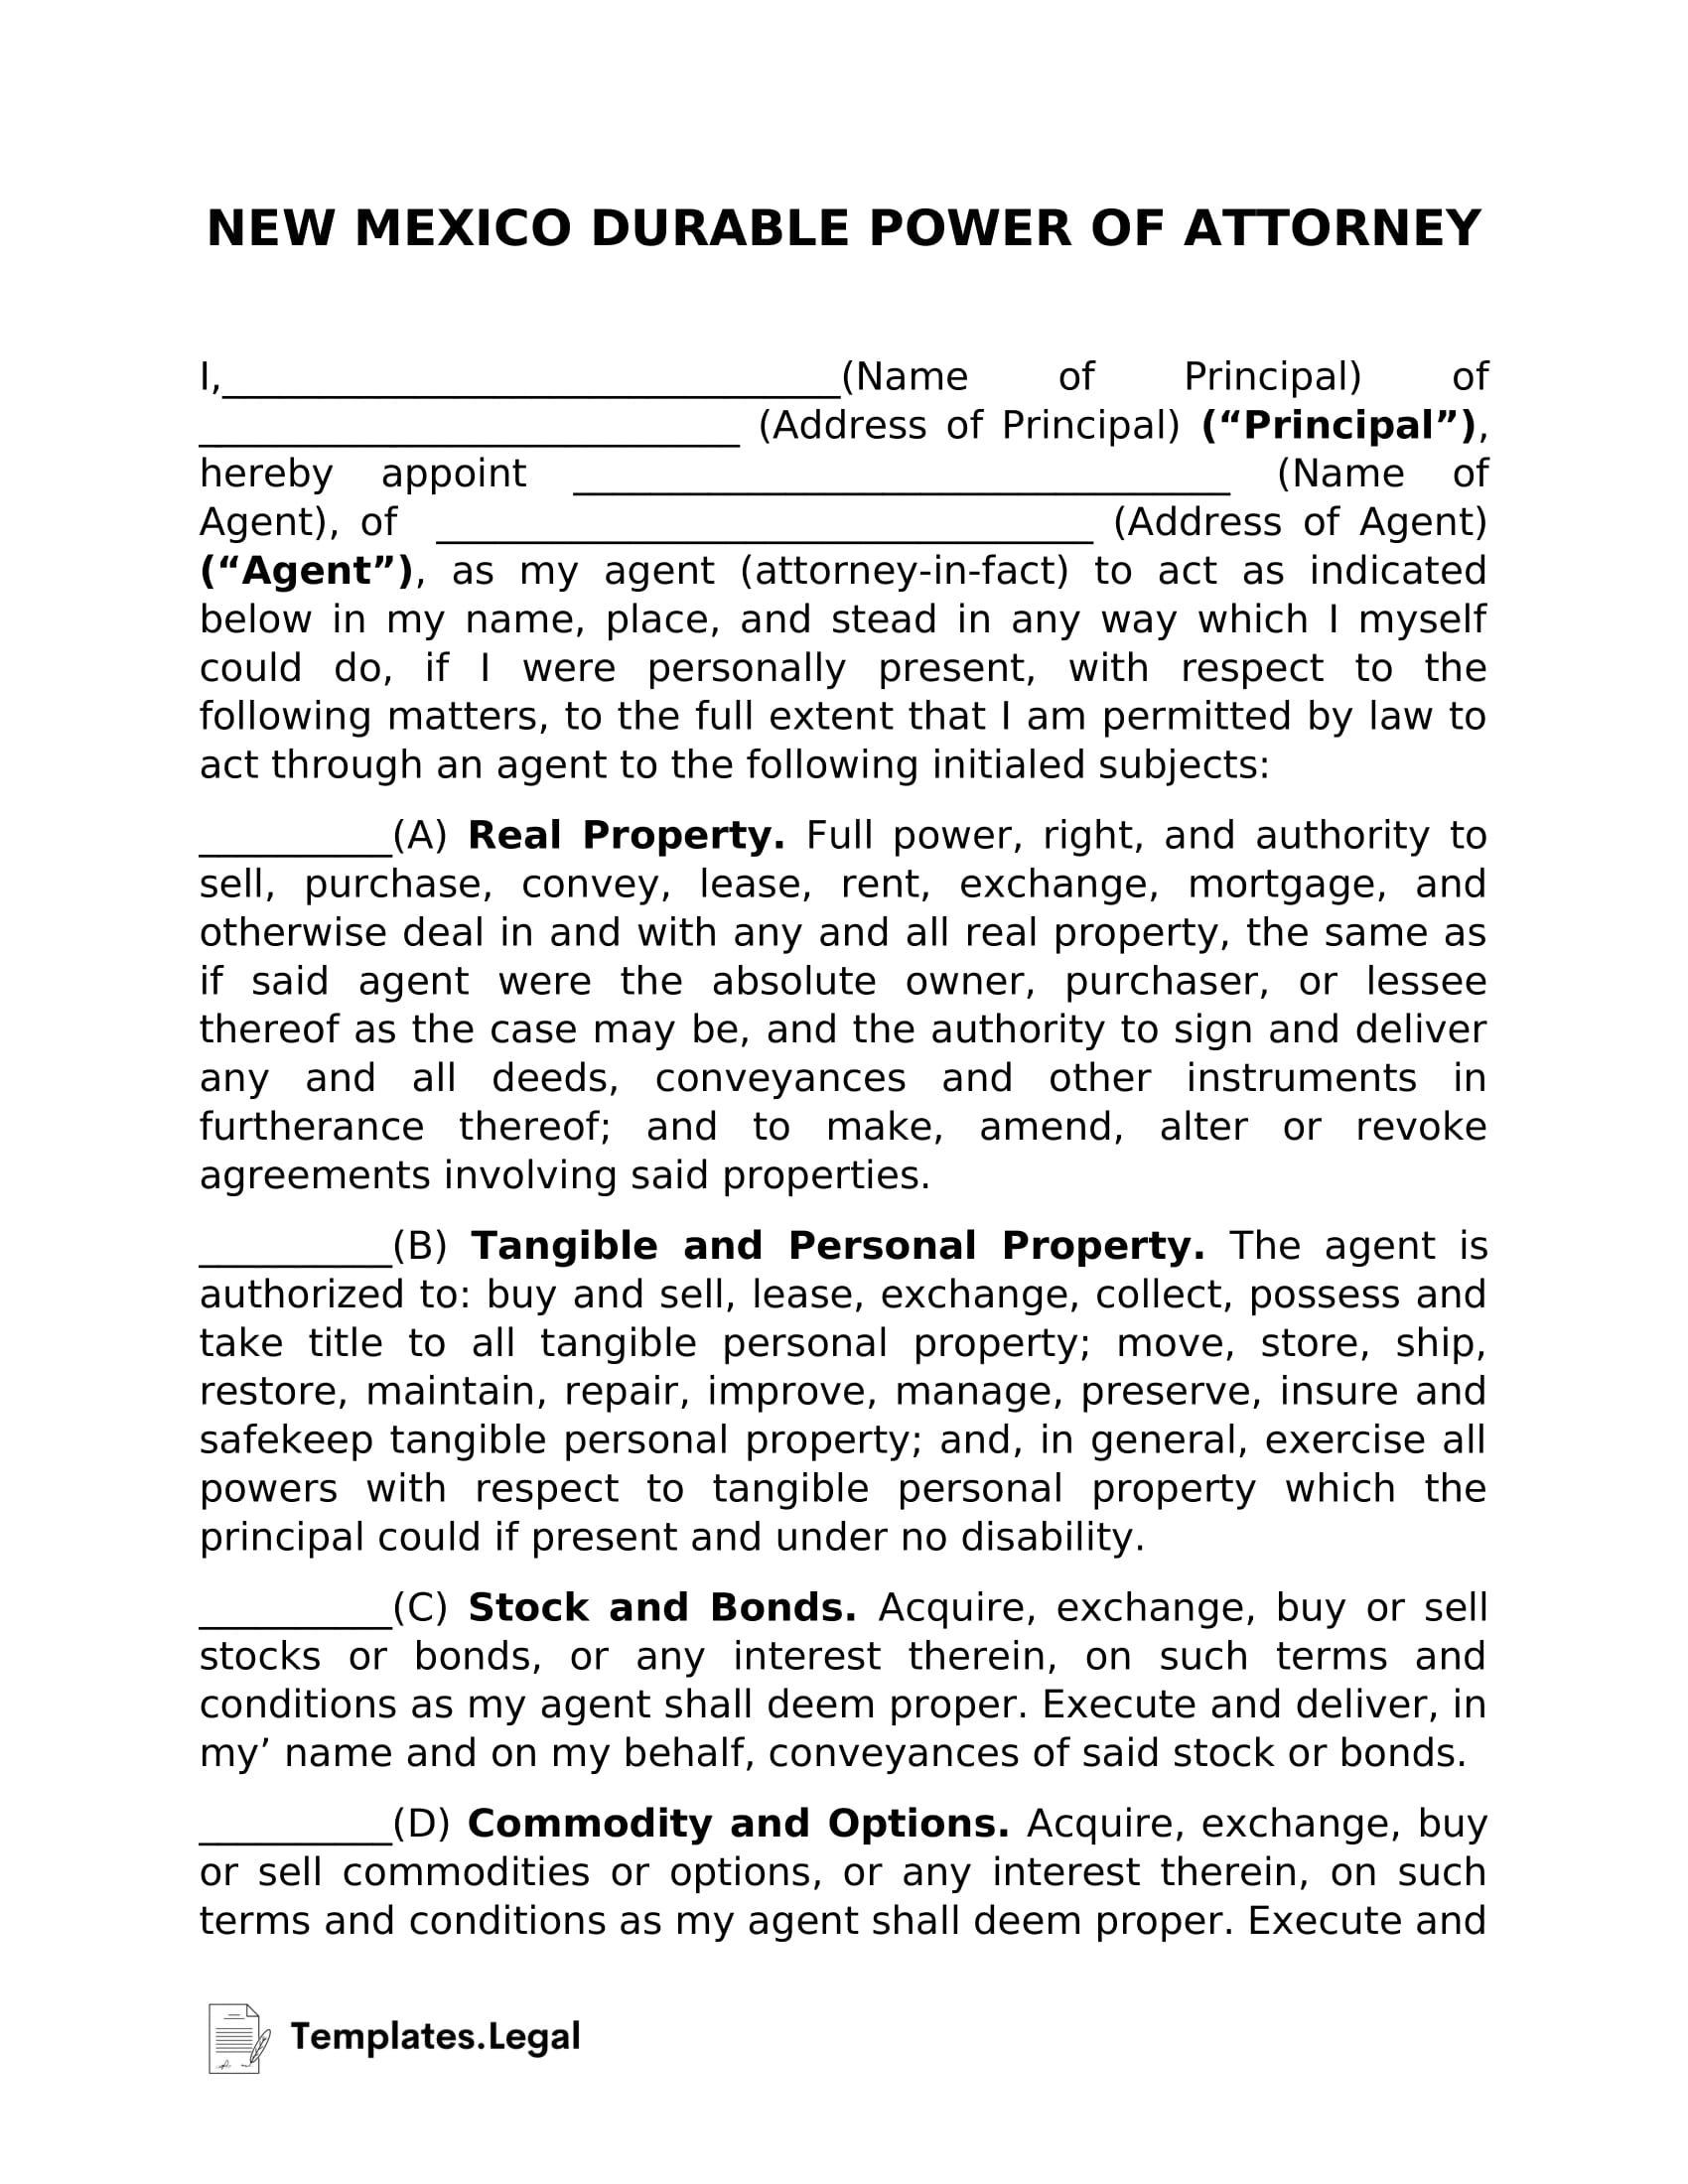 New Mexico Durable Power of Attorney - Templates.Legal